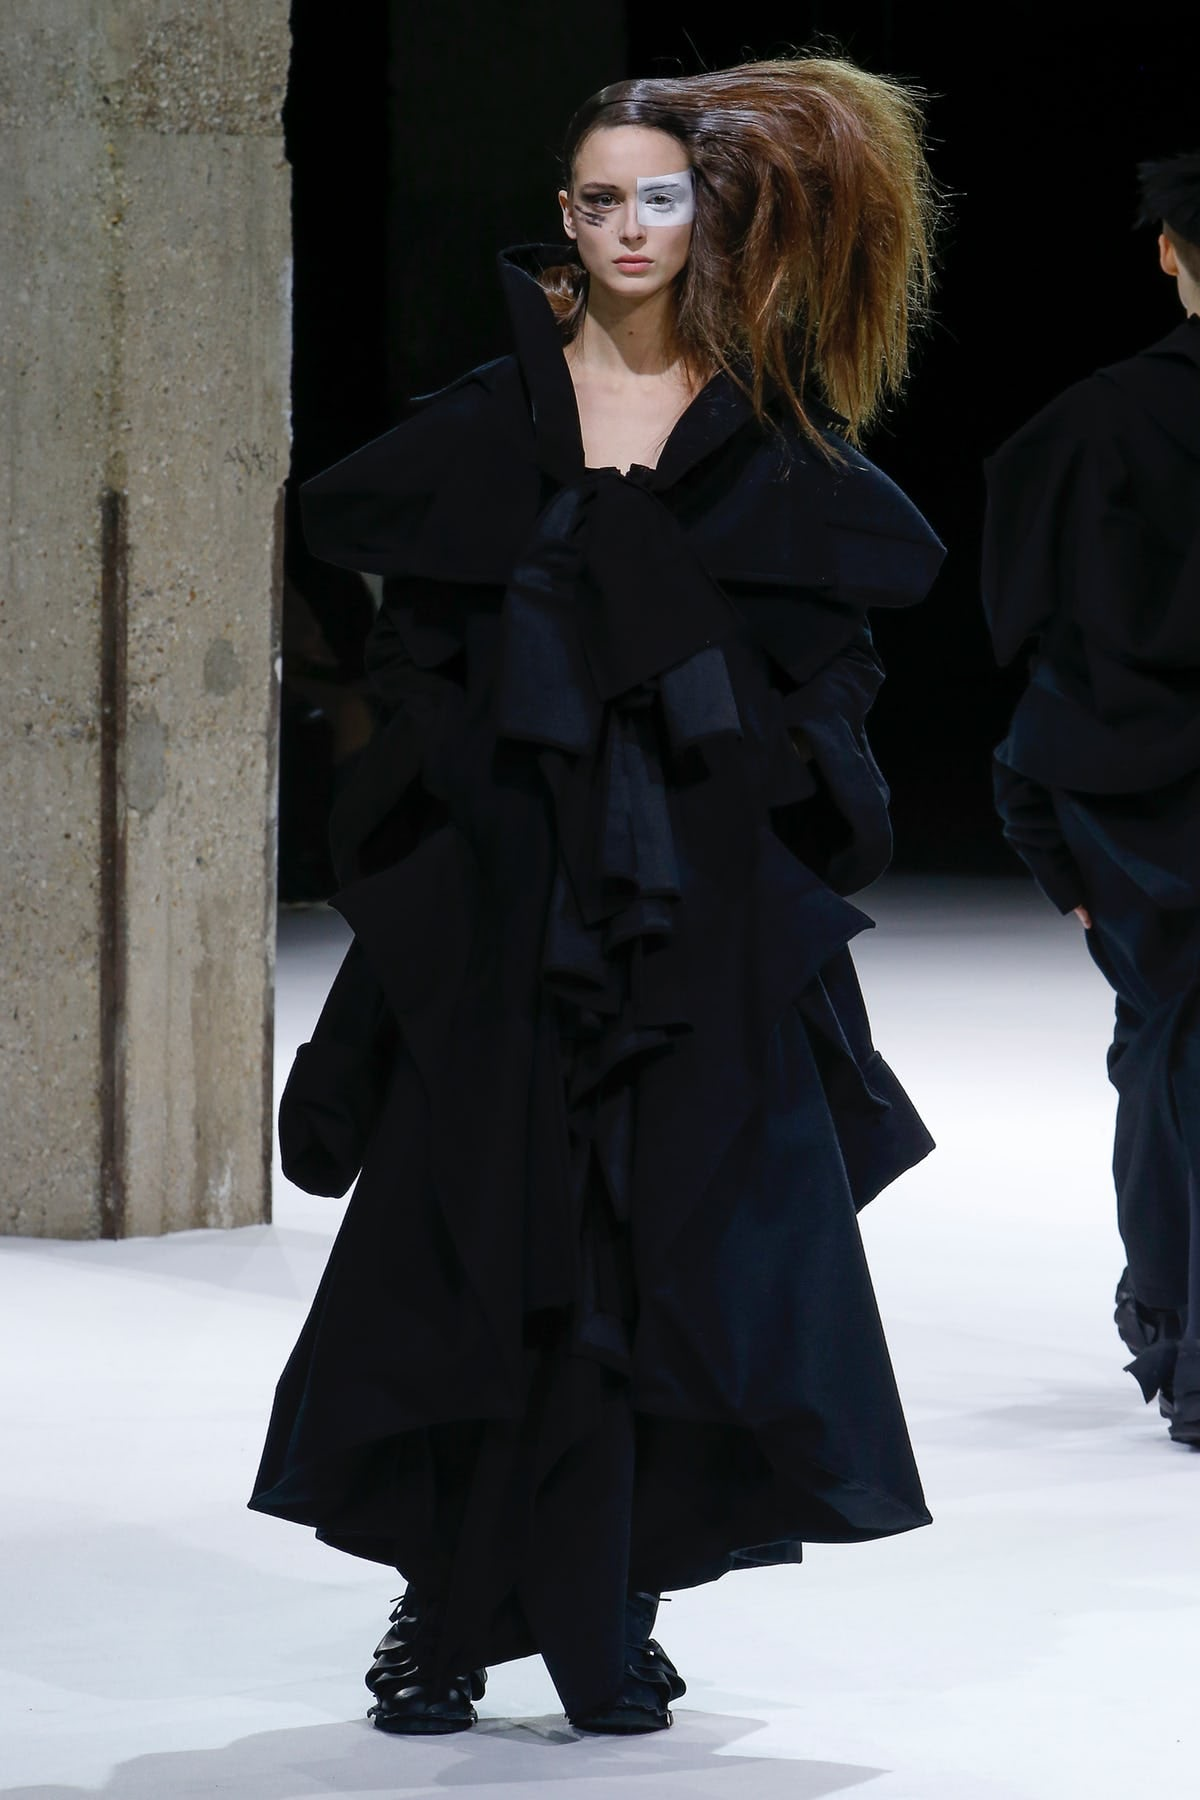 Yohji Yamamoto Autumn/Winter 2018 | Source: Indigital